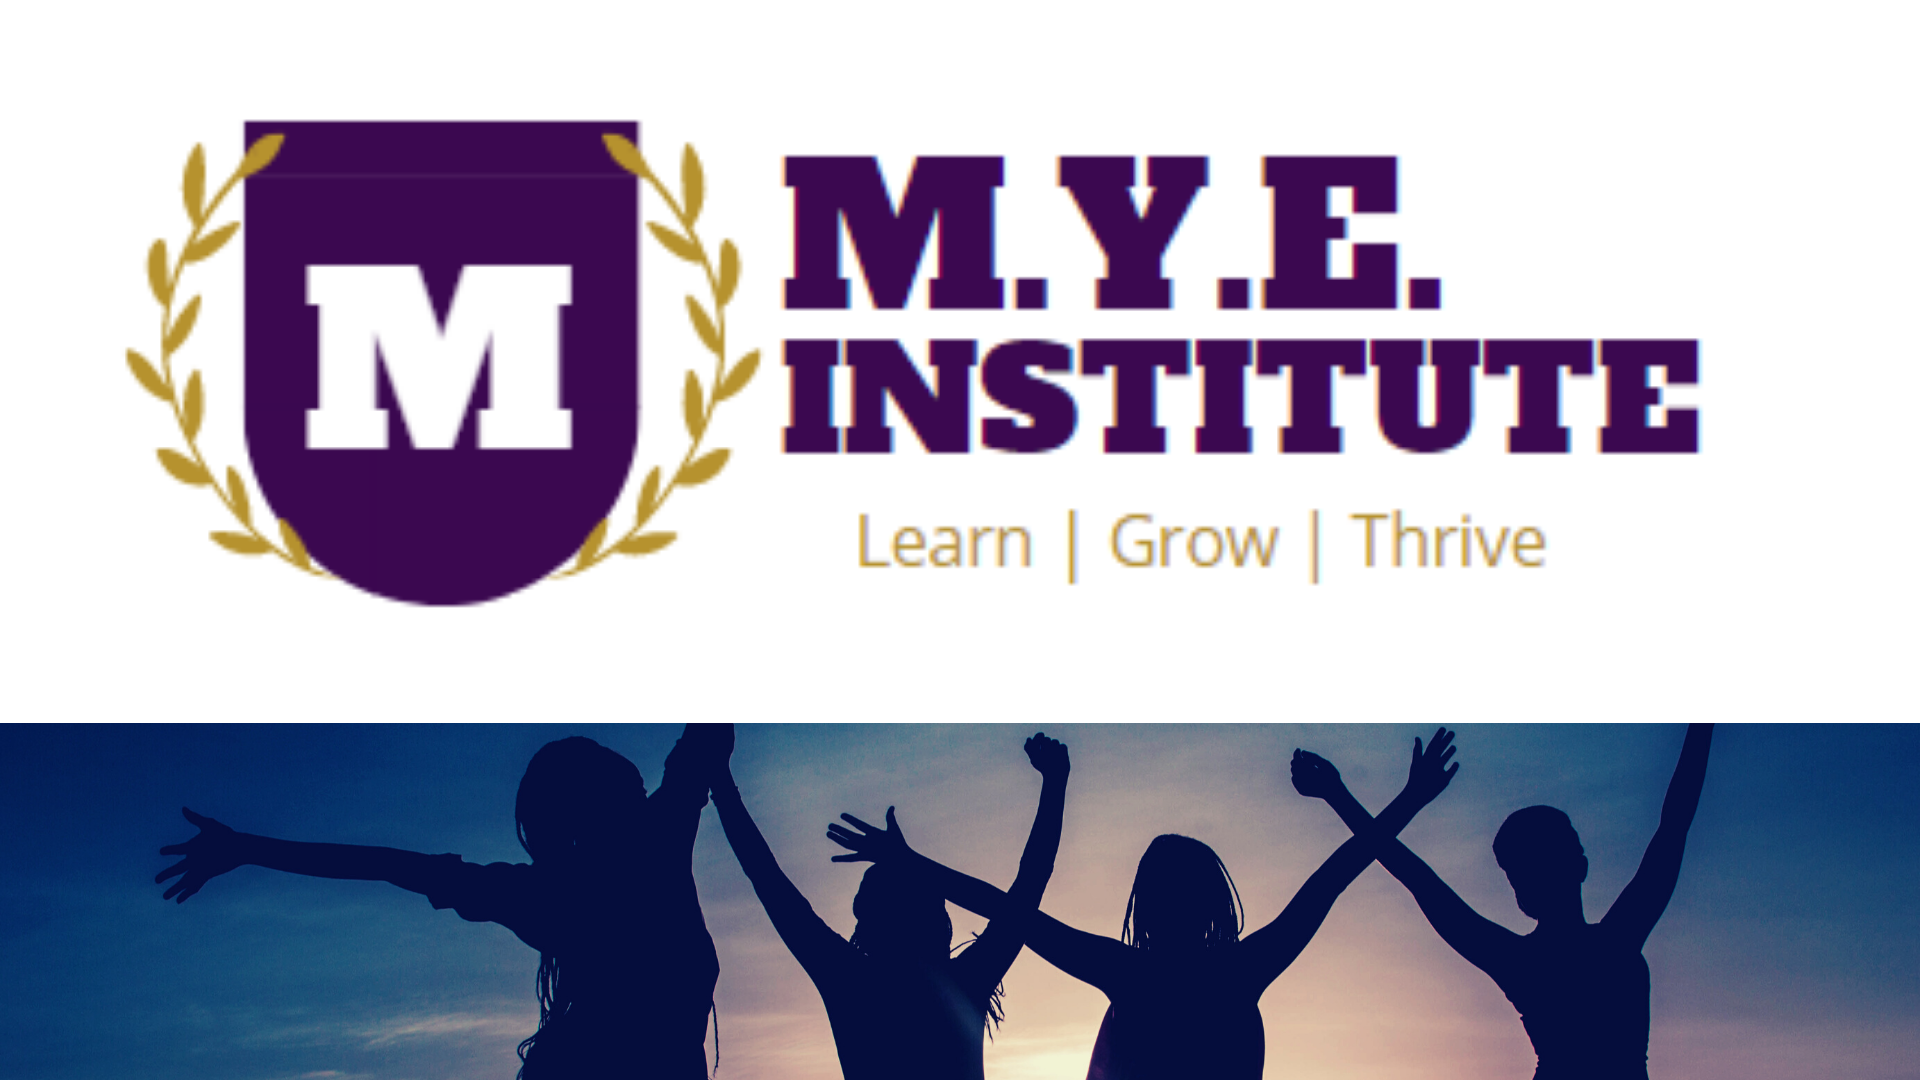 mye institute long logo (2)